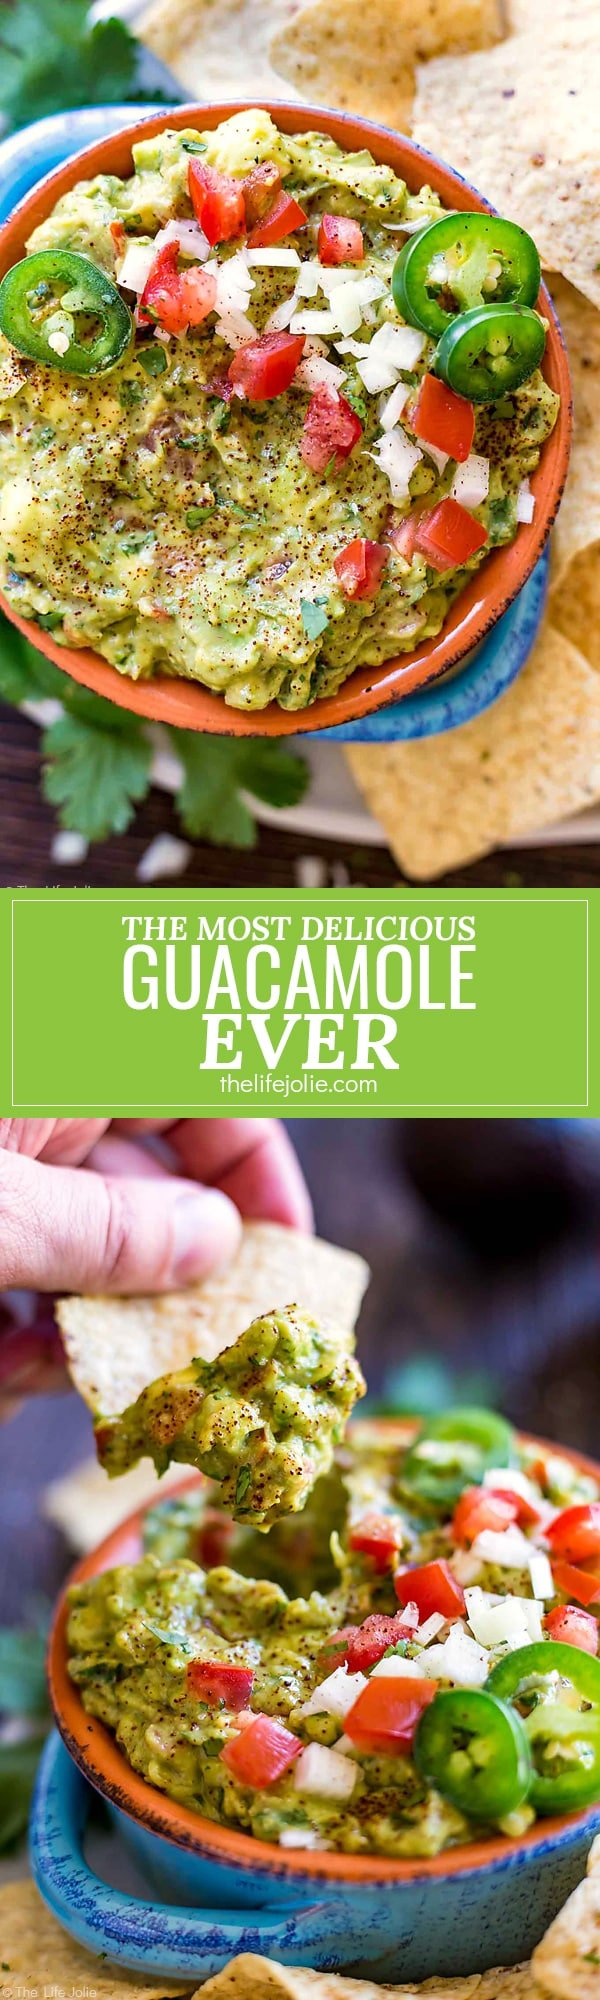 It's always a good idea to have an easy guacamole recipe up your sleeve and this one is seriously the best- fantastic, zesty flavor with an awesome secret ingredient to helps take the guacamole to the next level. It's a healthy snack for a Cinco de Mayo celebration or game day!